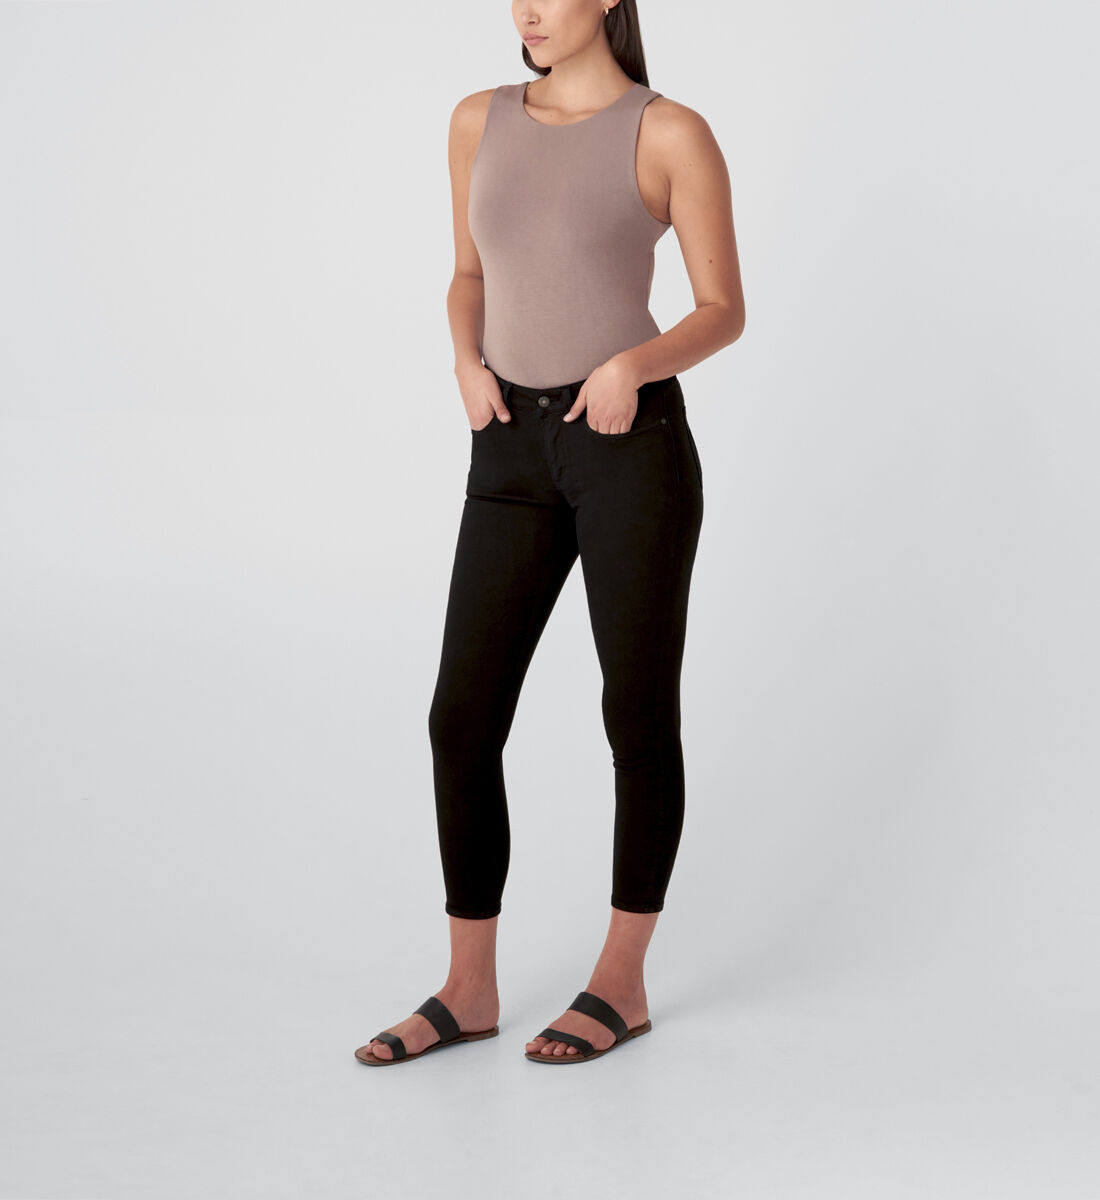 Most Wanted Mid Rise Skinny Jeans,Black Side